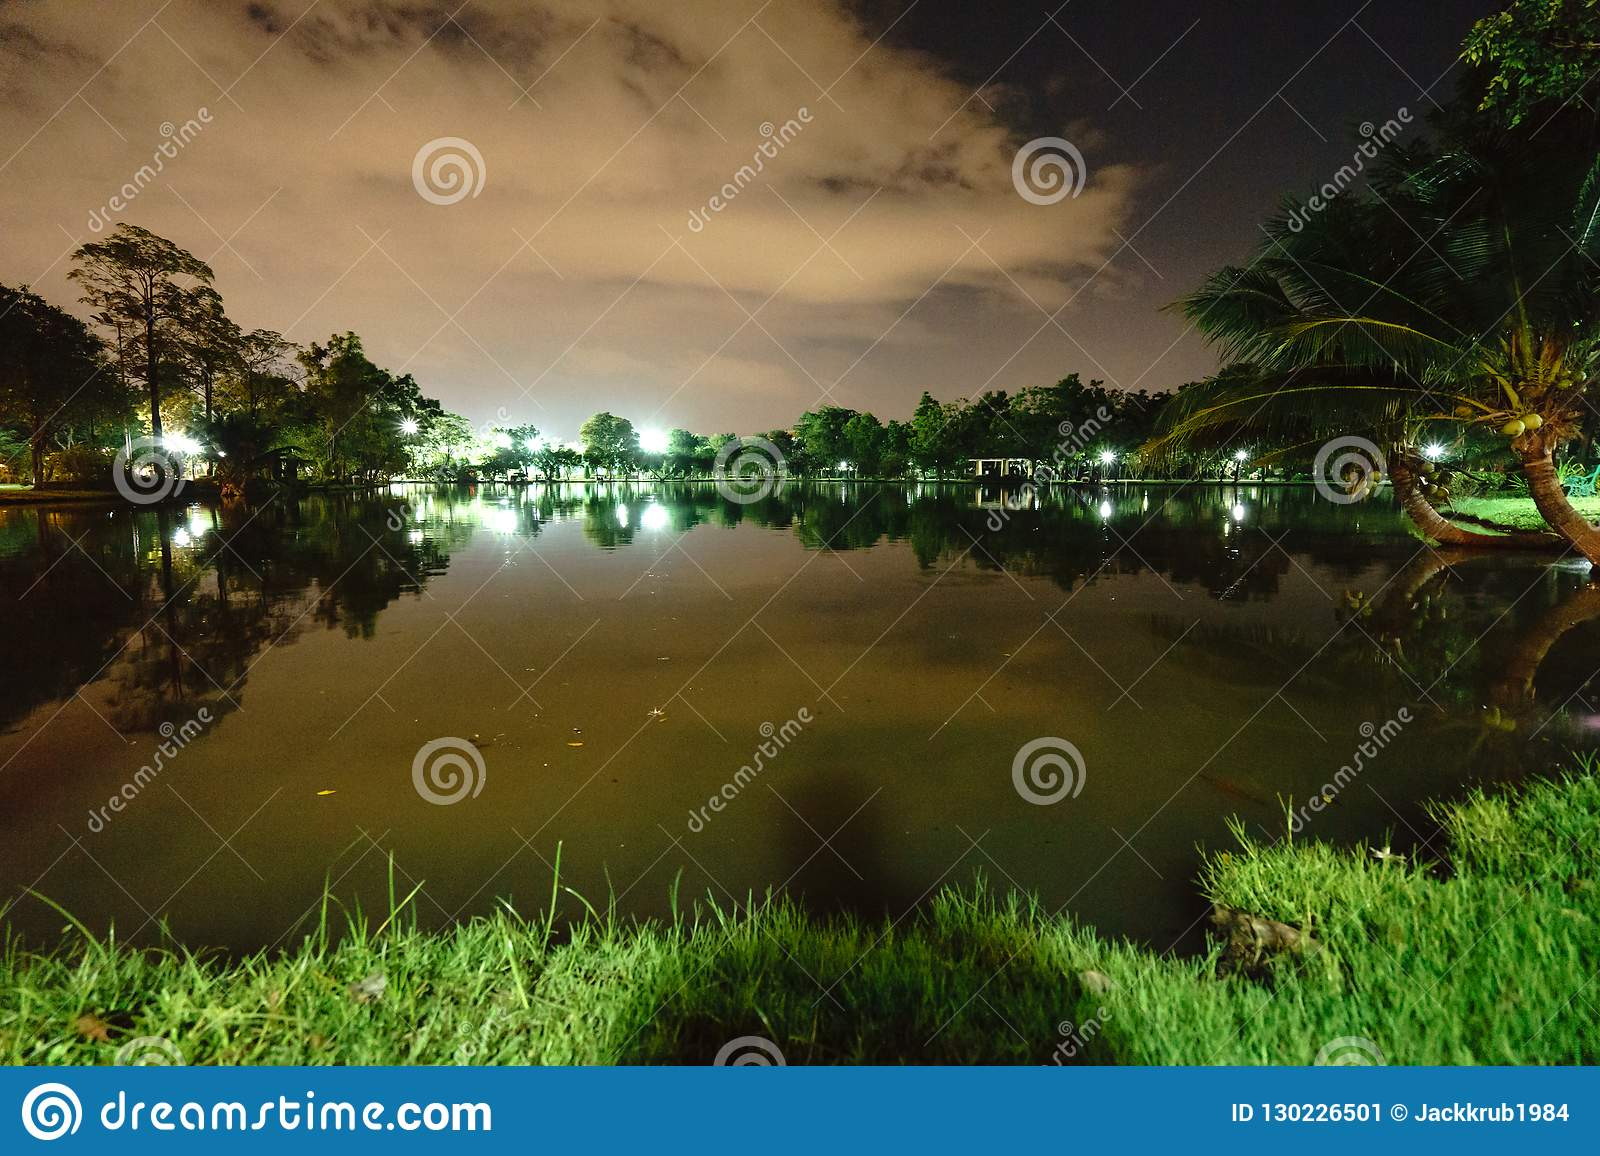 City park in the night with a resting place. The landscape of th